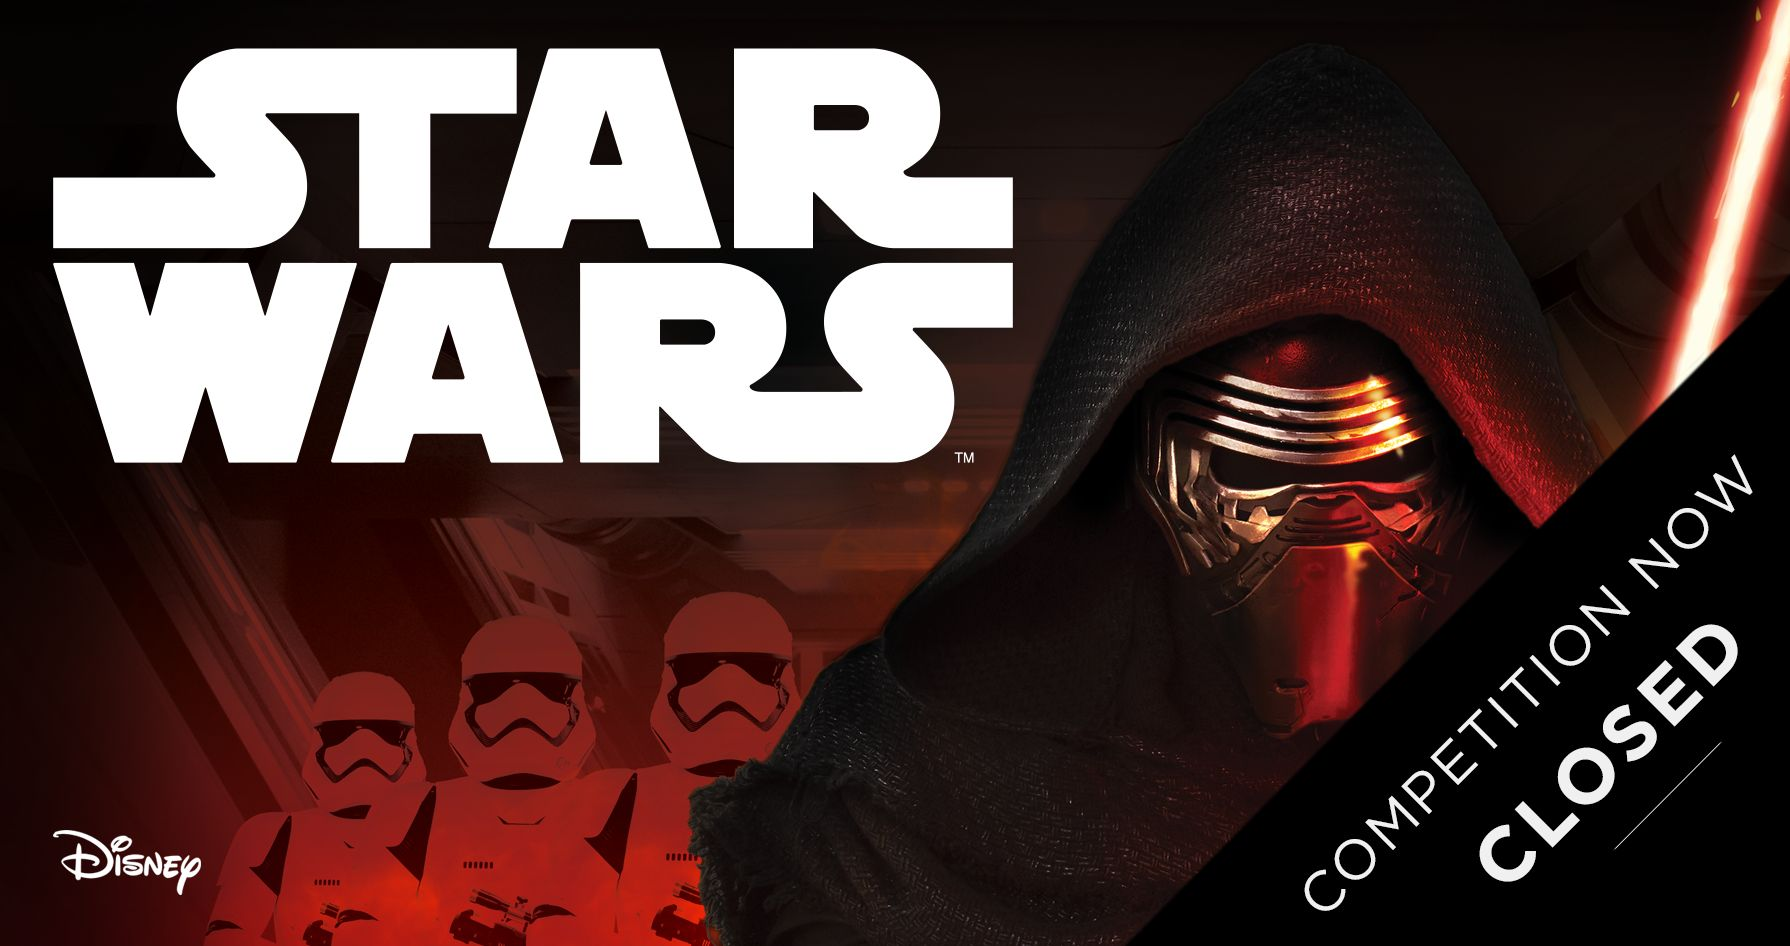 WIN A VIP STAR WARS AT MADAME TUSSAUDS LONDON EXPERIENCE AND HOTEL STAY FOR 4